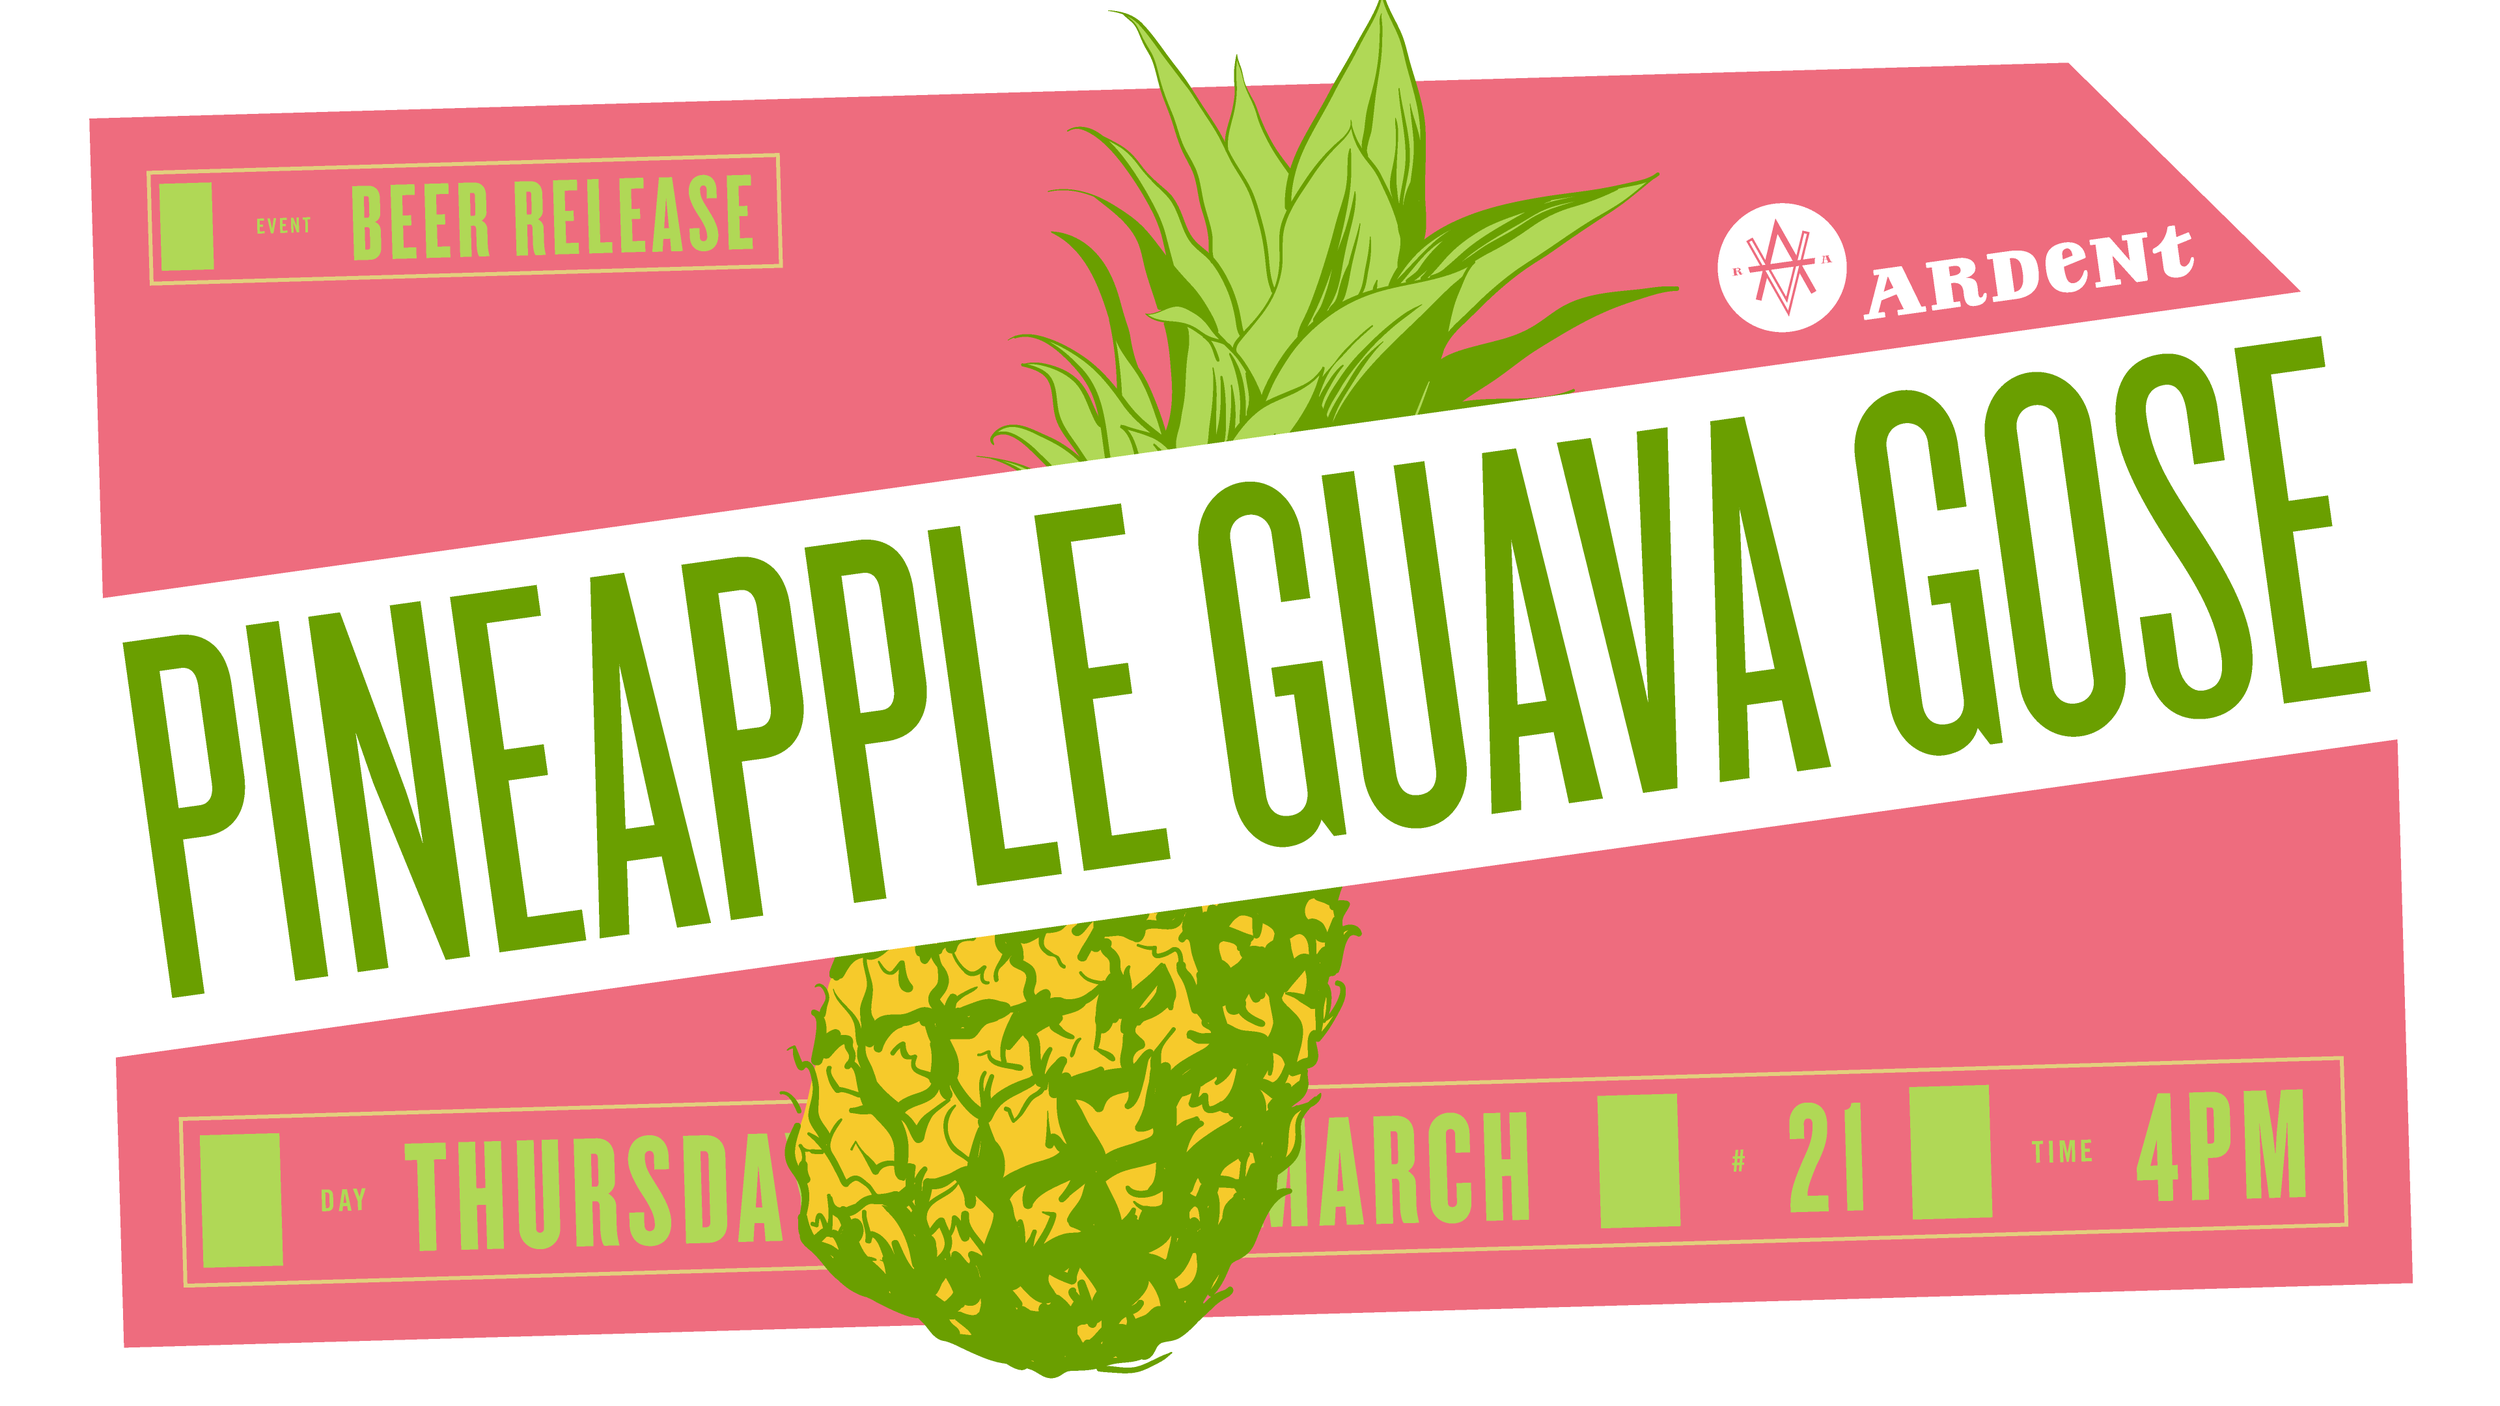 pineapple-guava-fb-event.png